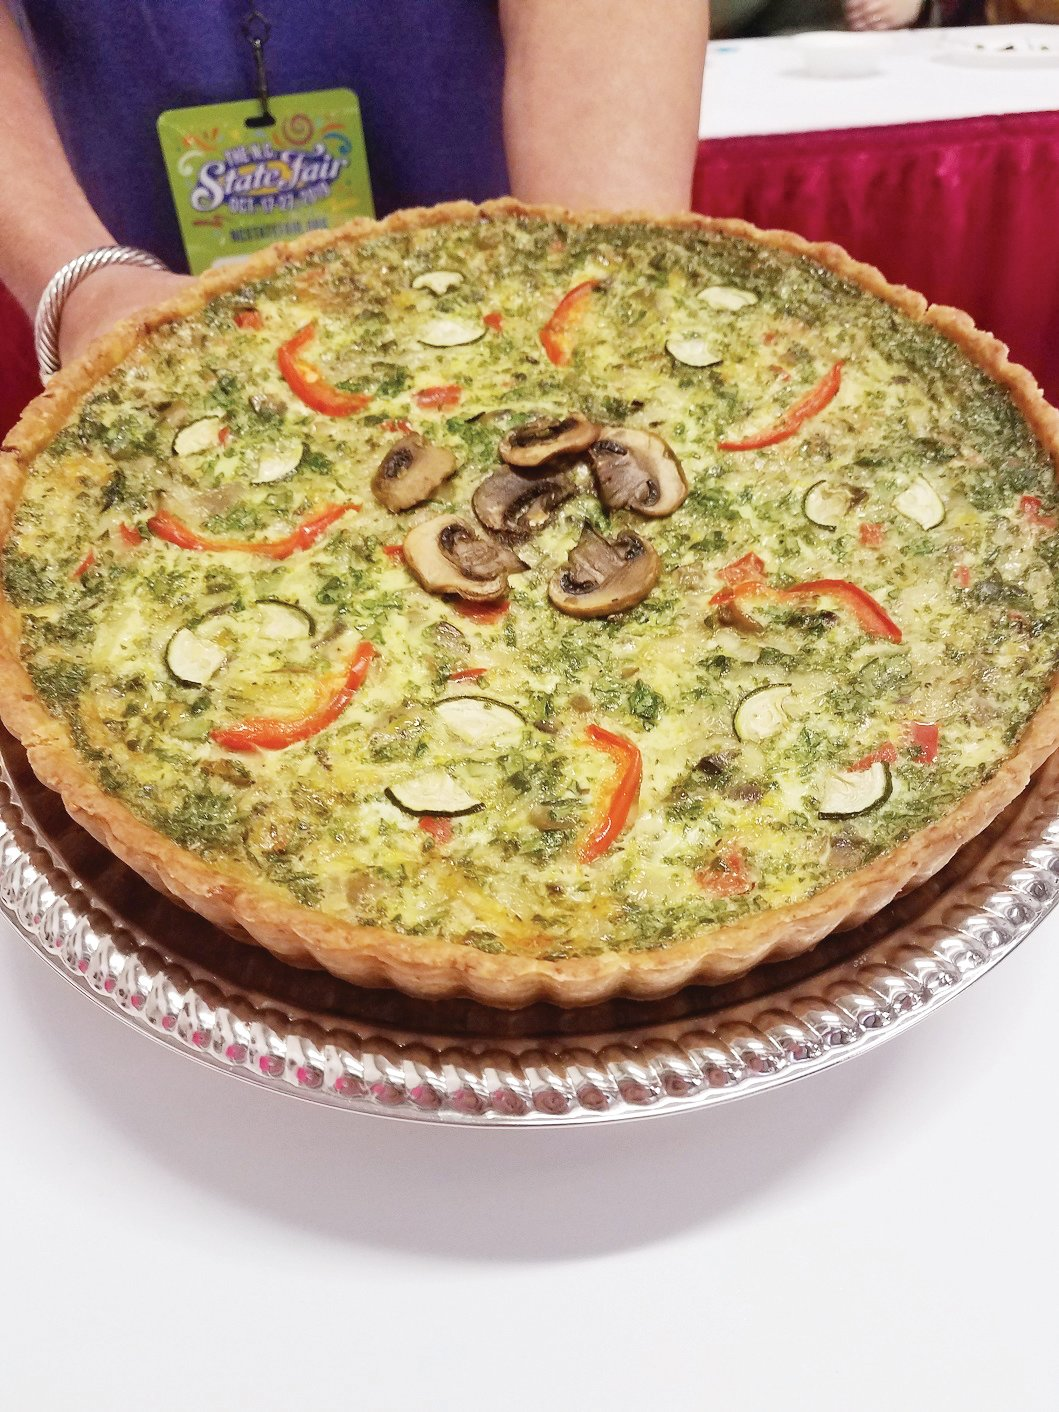 The most amazing quiche ever.